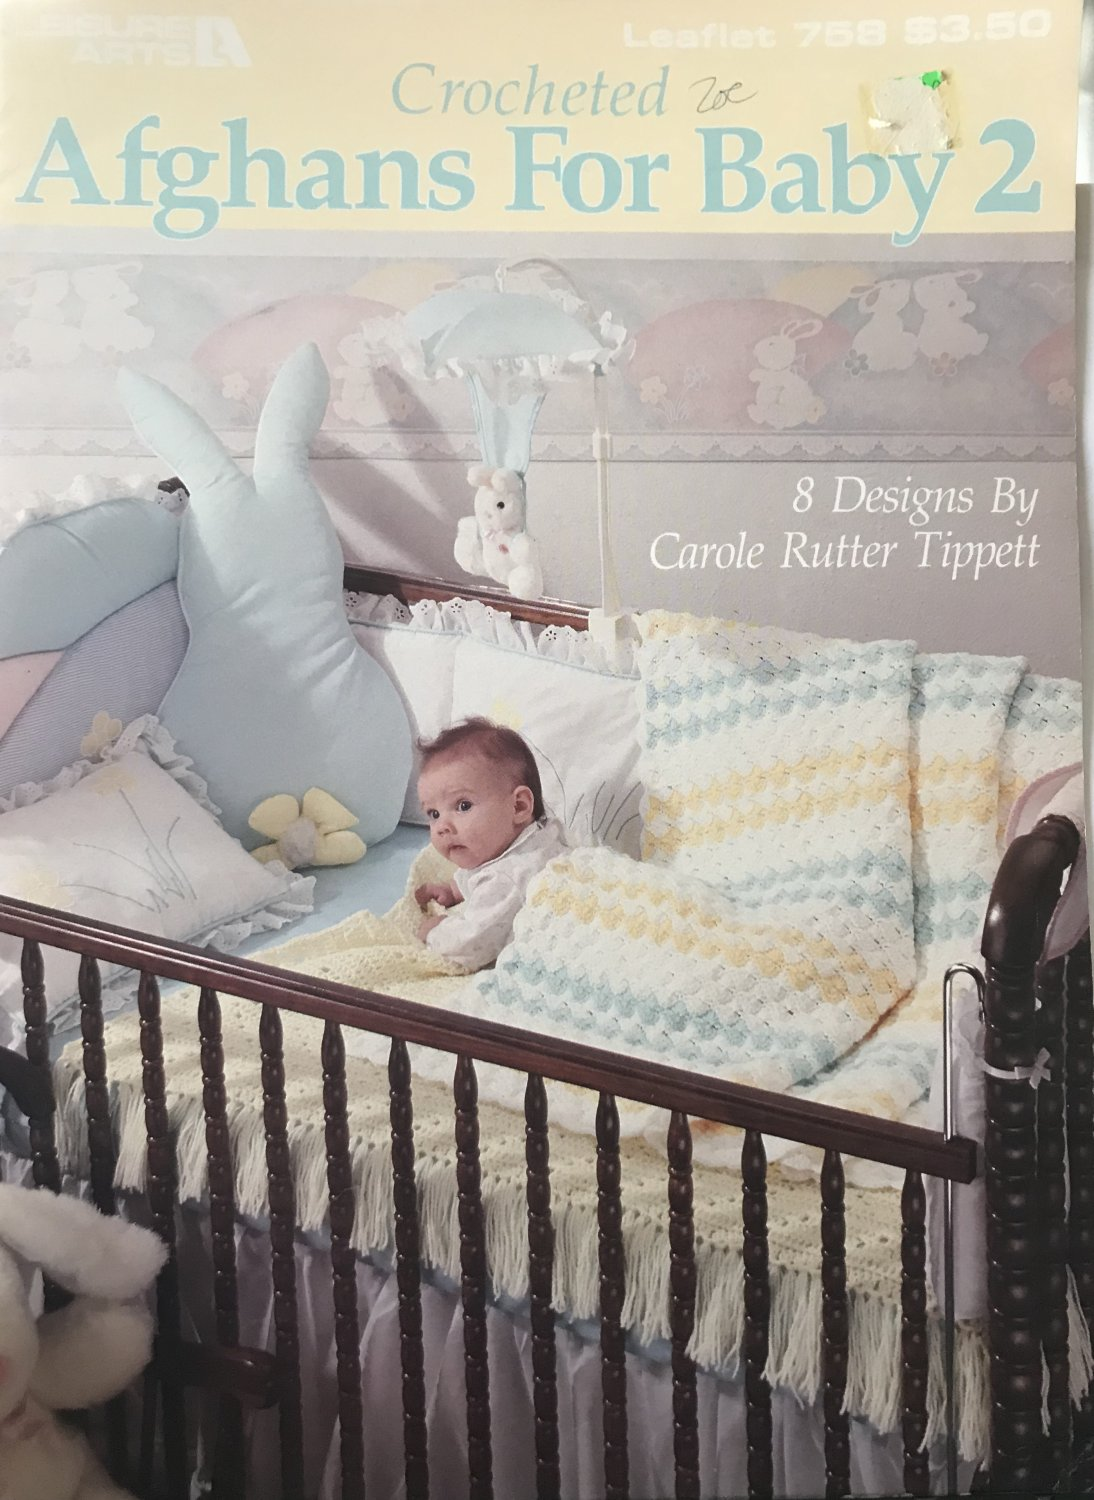 Leisure Arts 758 Crocheted Afghans for Baby 2 Crochet Pattern Carole Rutter Tippett